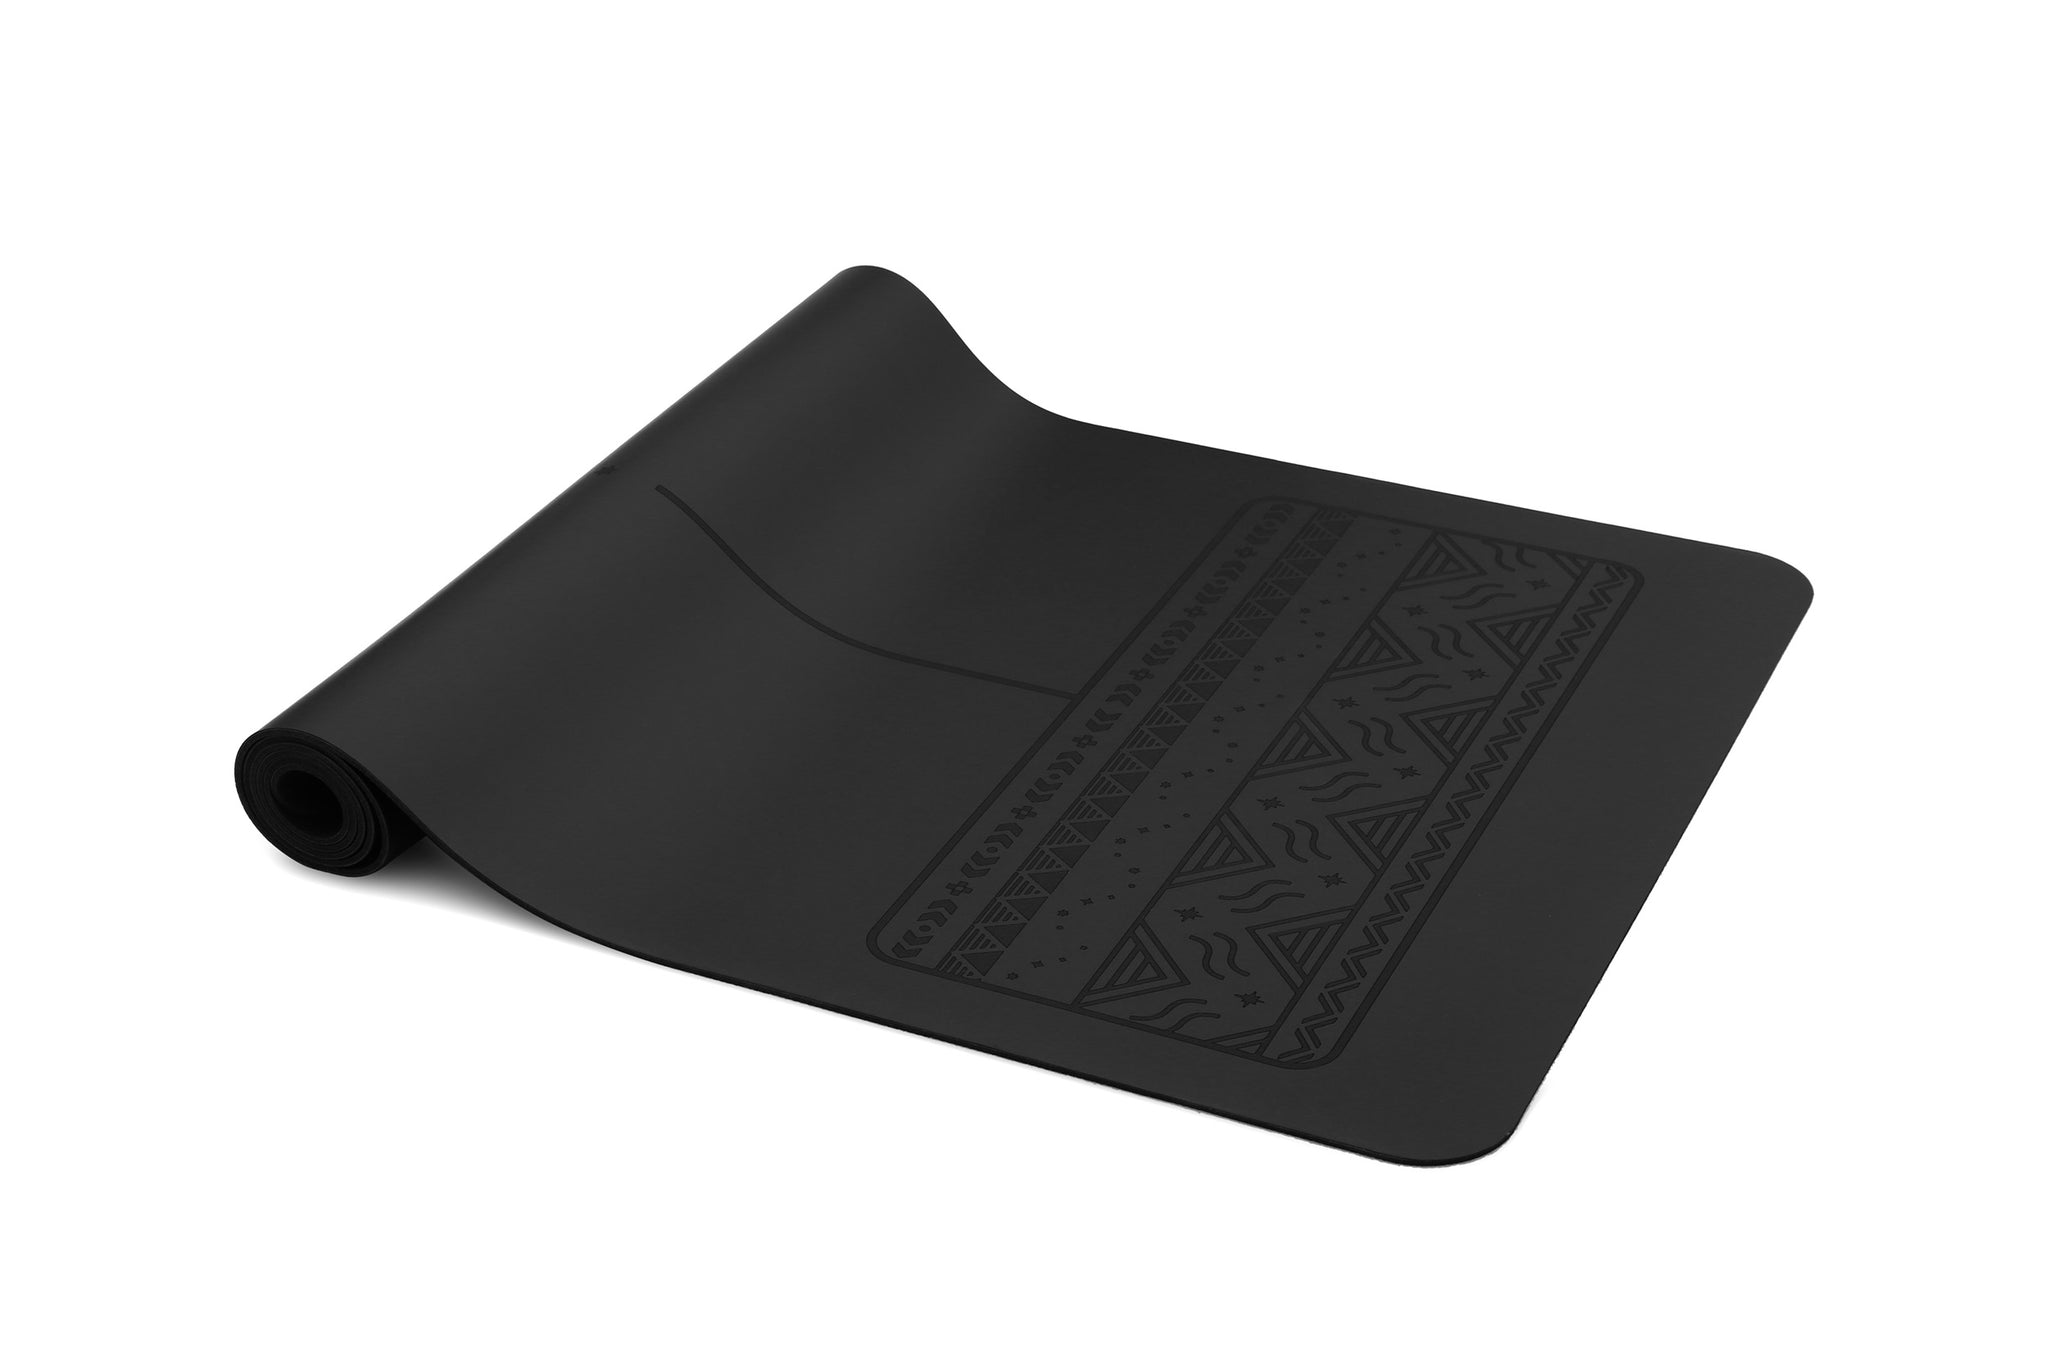 Paws - Natural rubber extreme grip yoga mat - Black